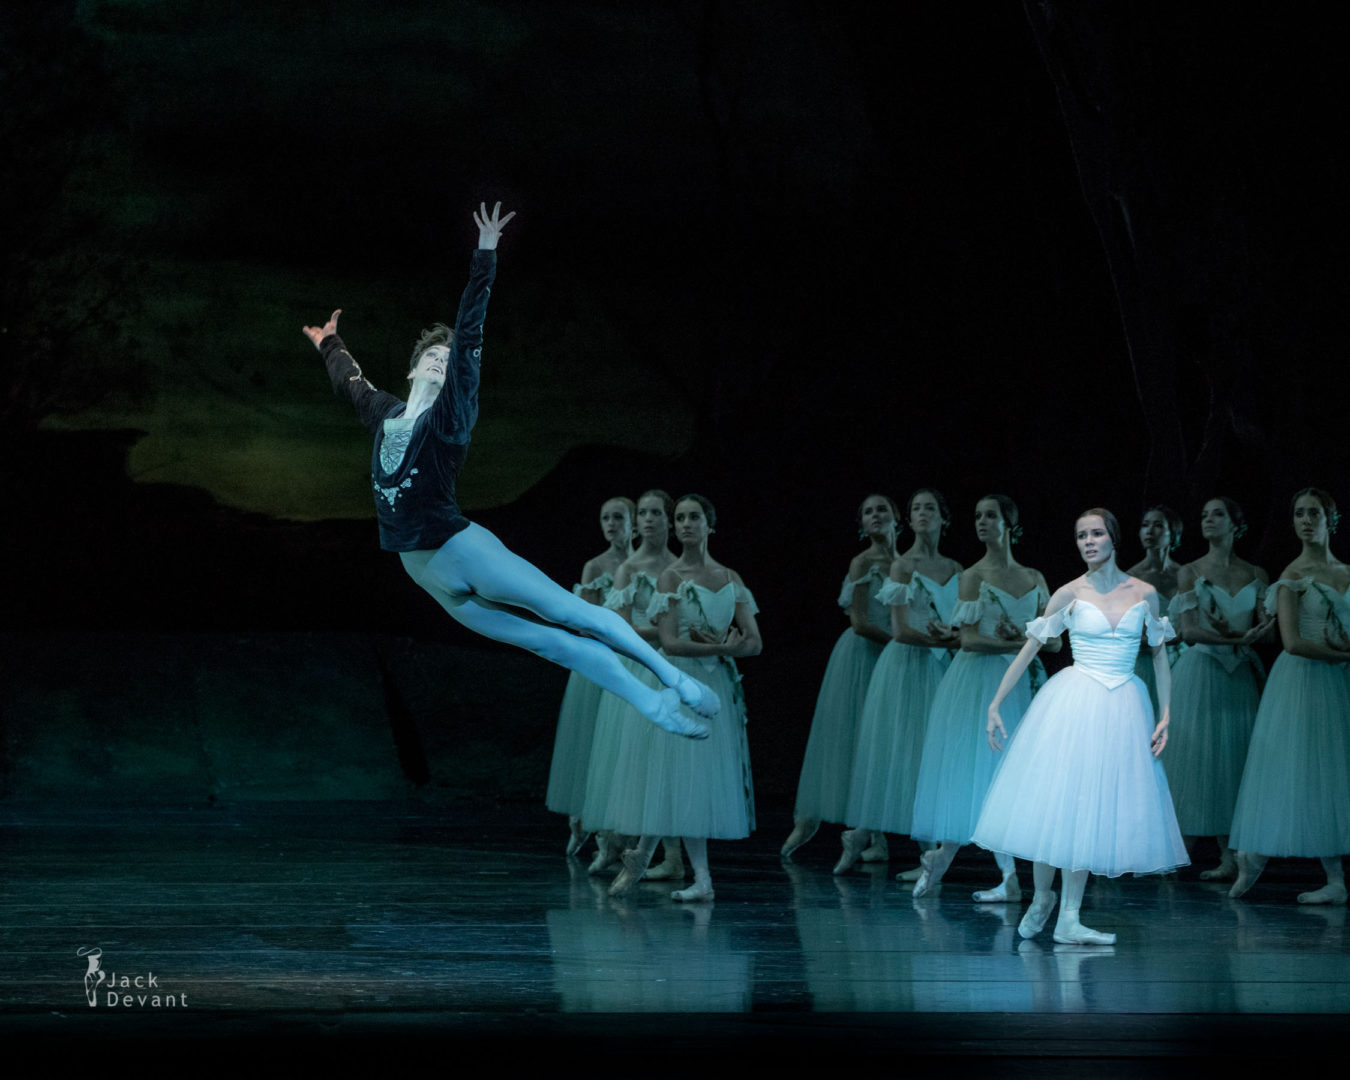 Maria Shirinkina and Vladimir Shklyarov in Giselle